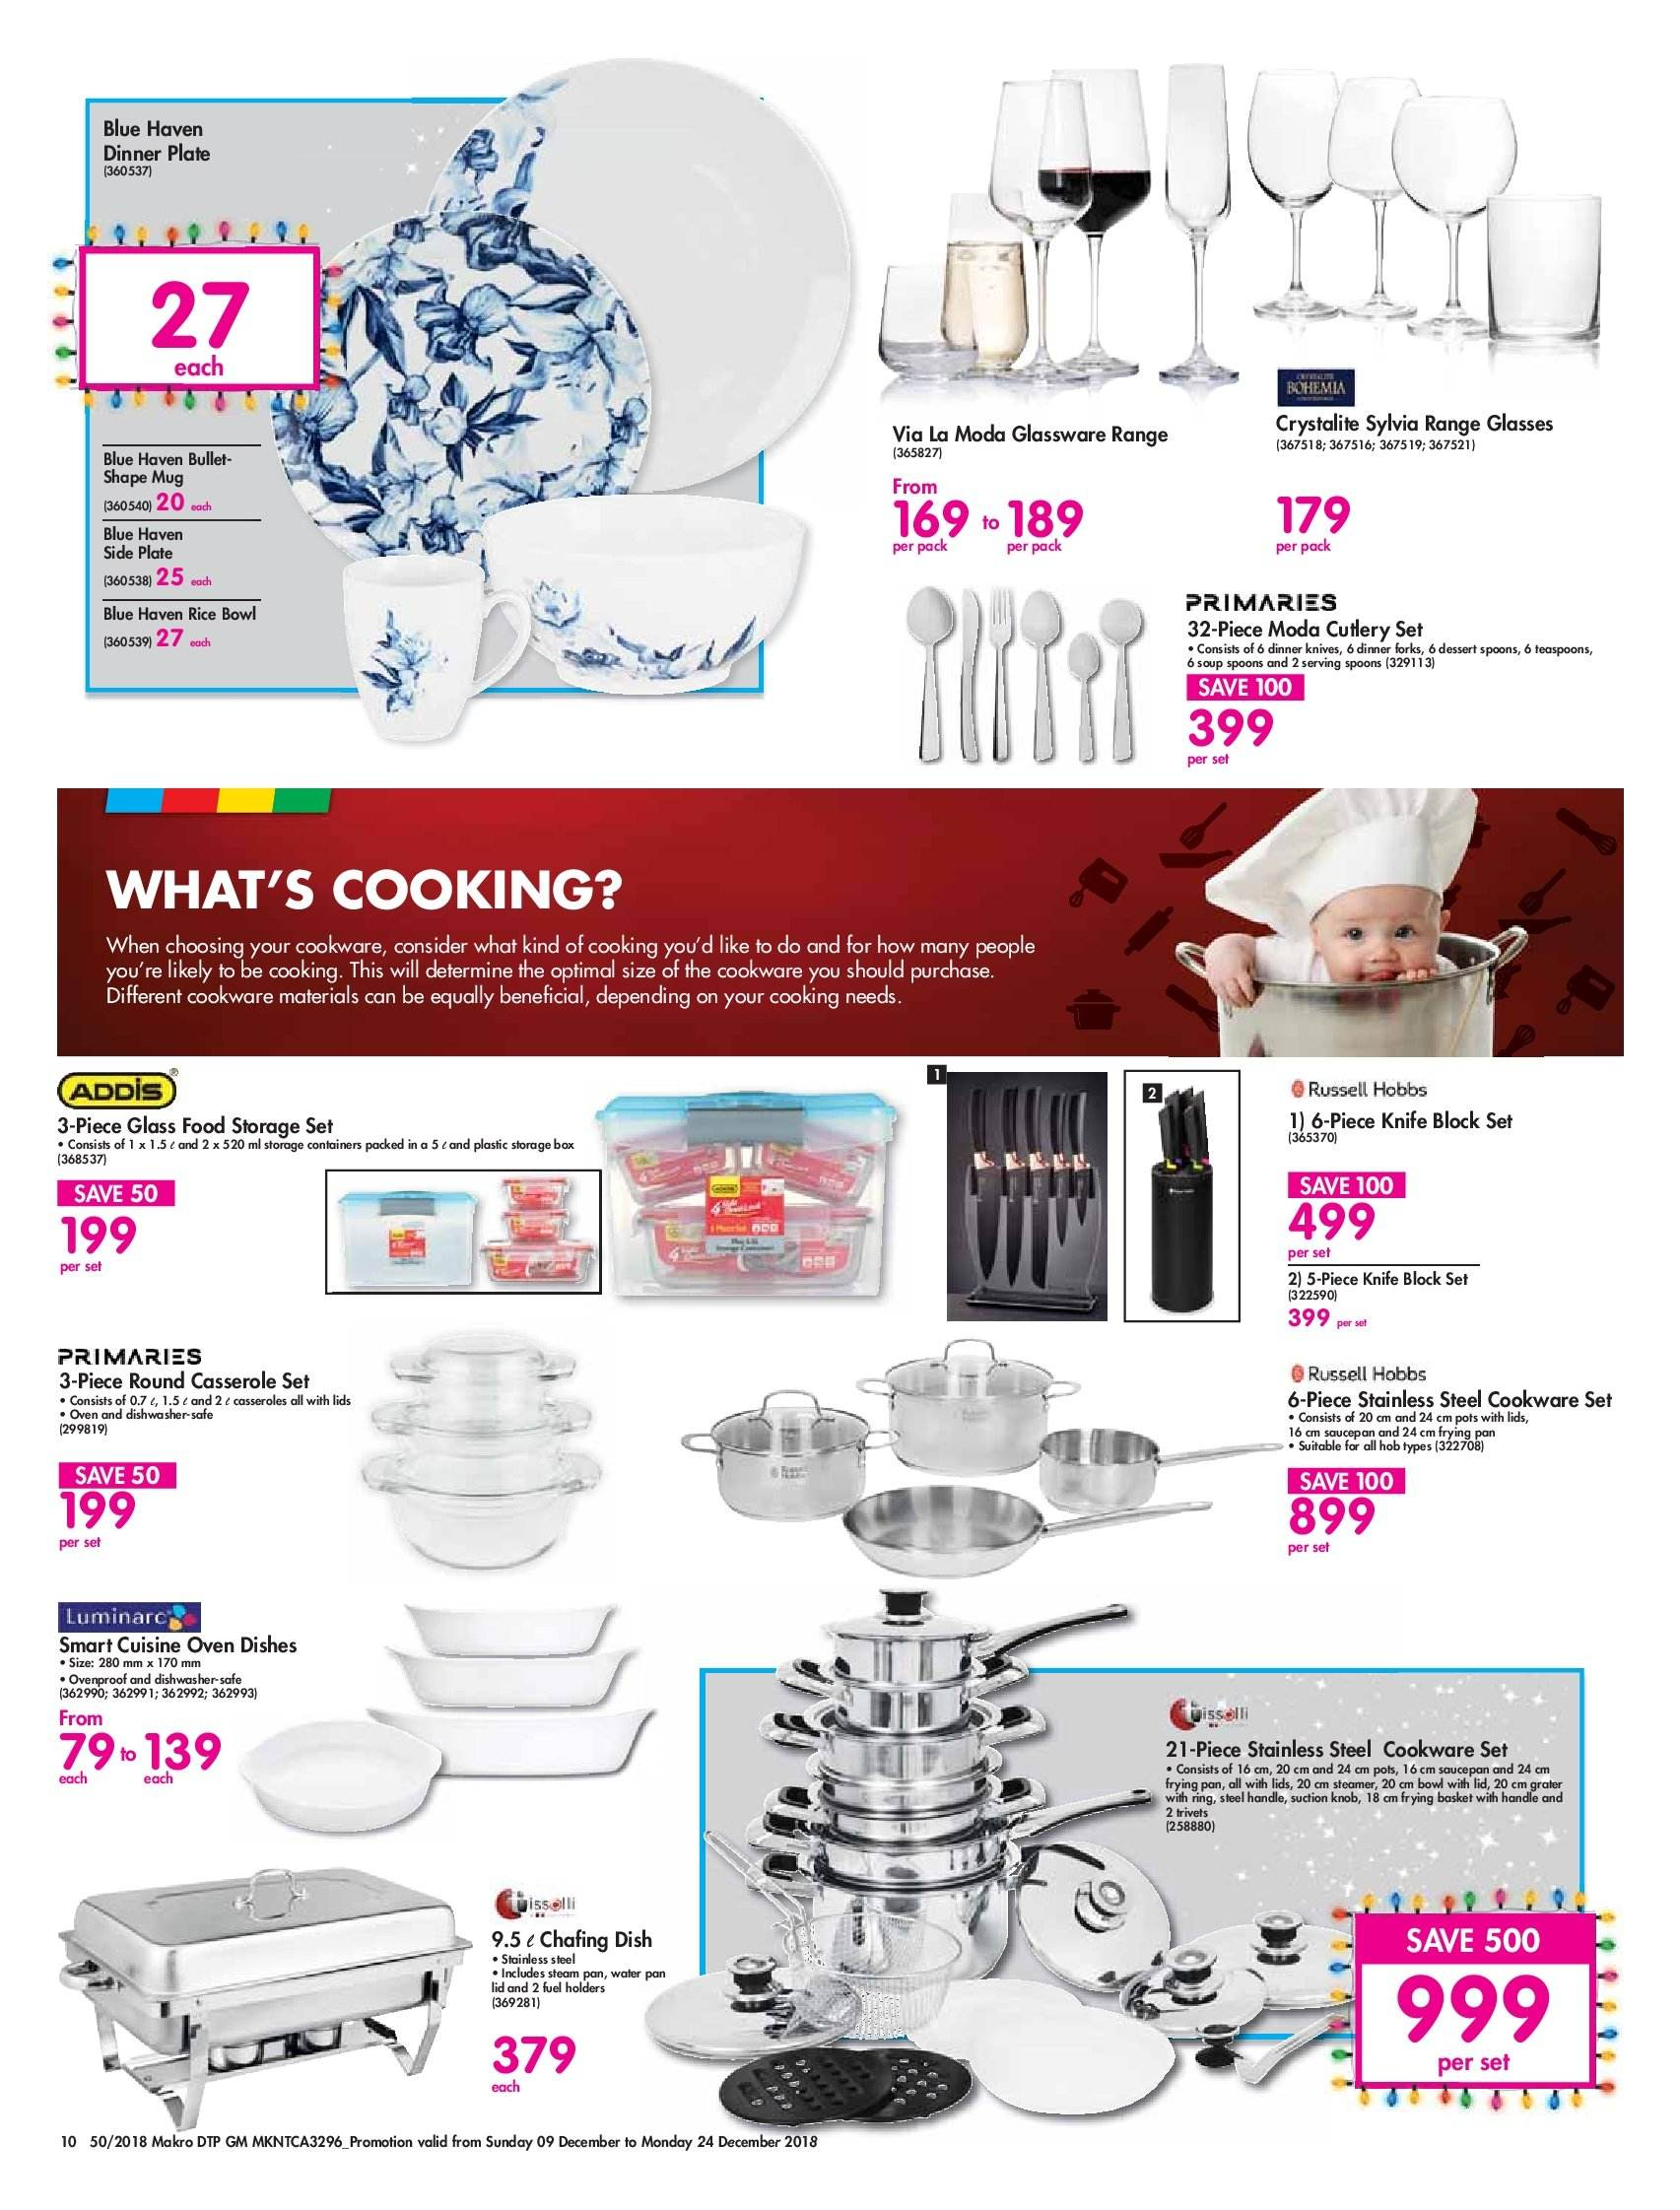 Makro special - 12.09.2018 - 12.24.2018 - Sales products - basket, bowl, cookware set, knife, knob, mug, rice, ring, spoon, storage set, pan, oven, glasses, soup. Page 10.